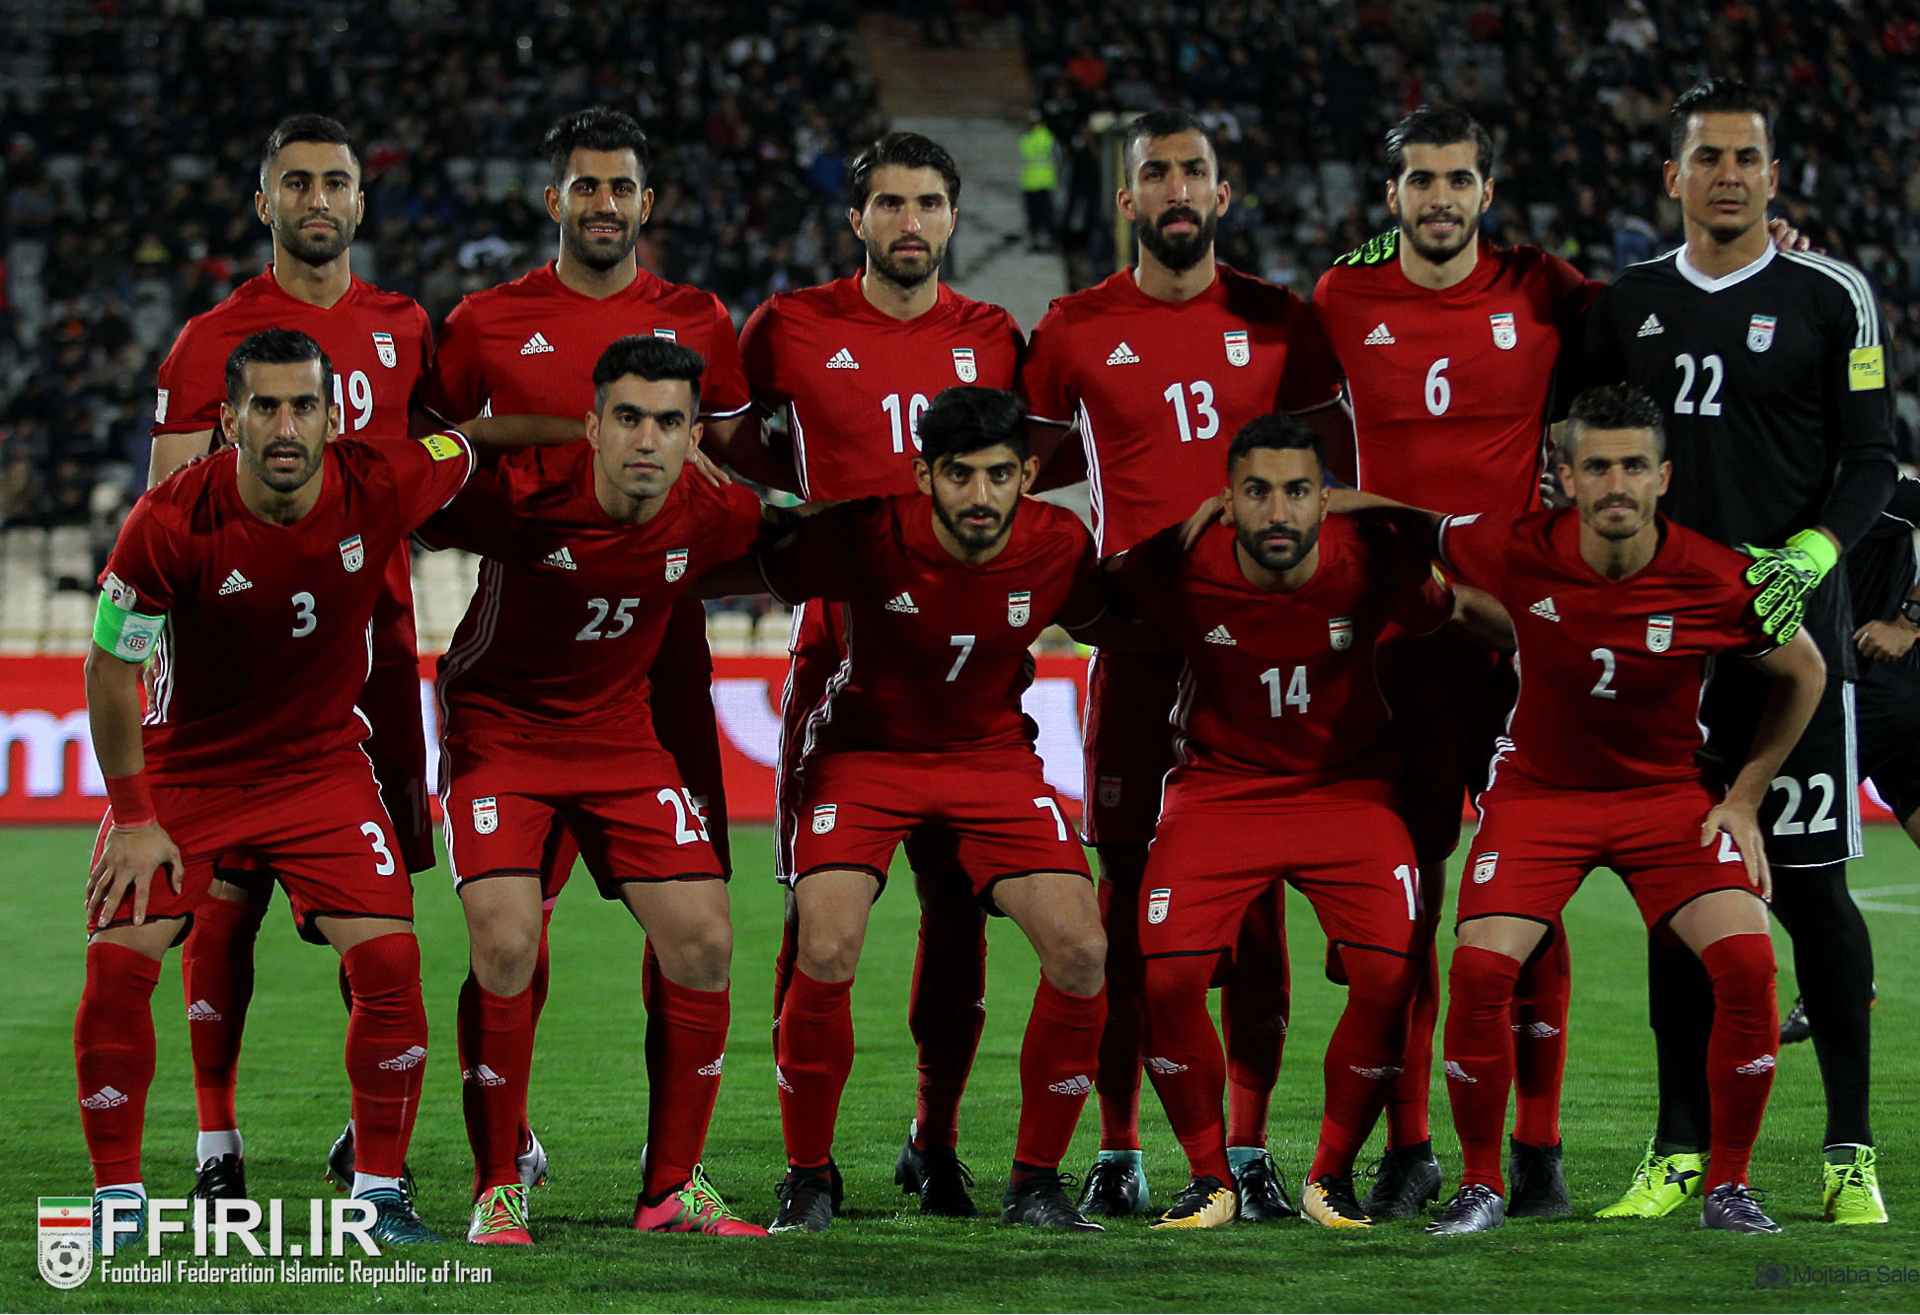 iran-2017-adidas-away-kit-red-red-red-line-up.png